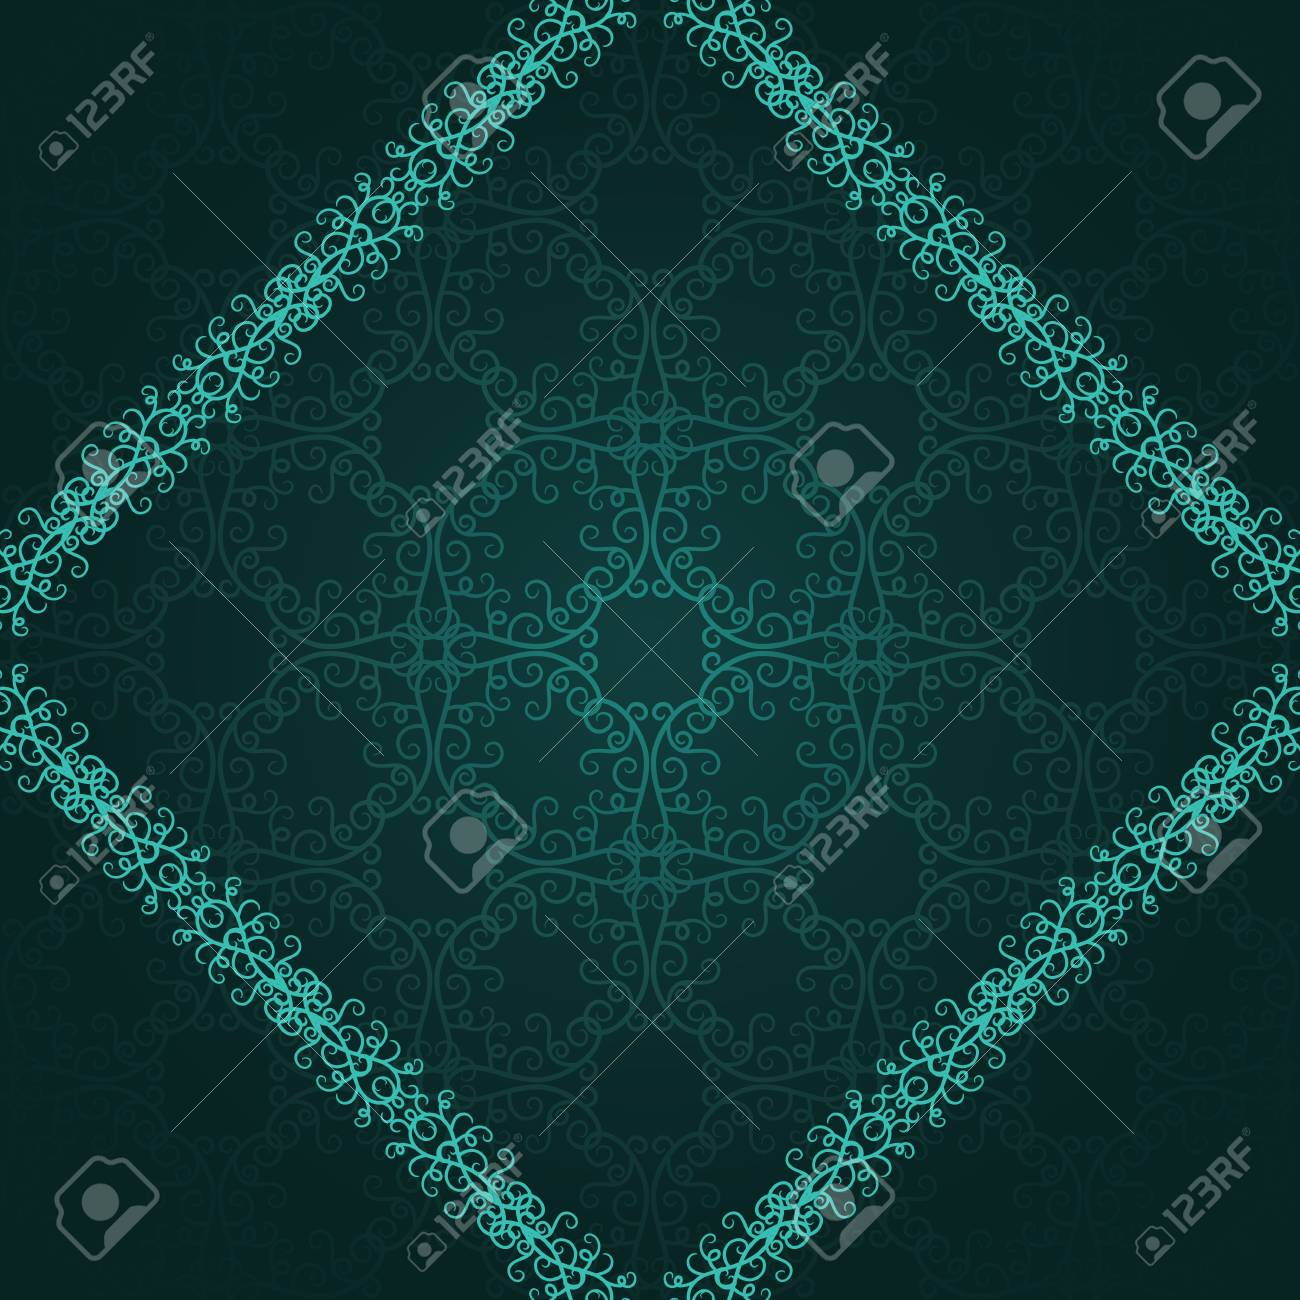 Vintage frame in a diamond shape with a damask wallpaper on a dark background Stock Vector - 13603375